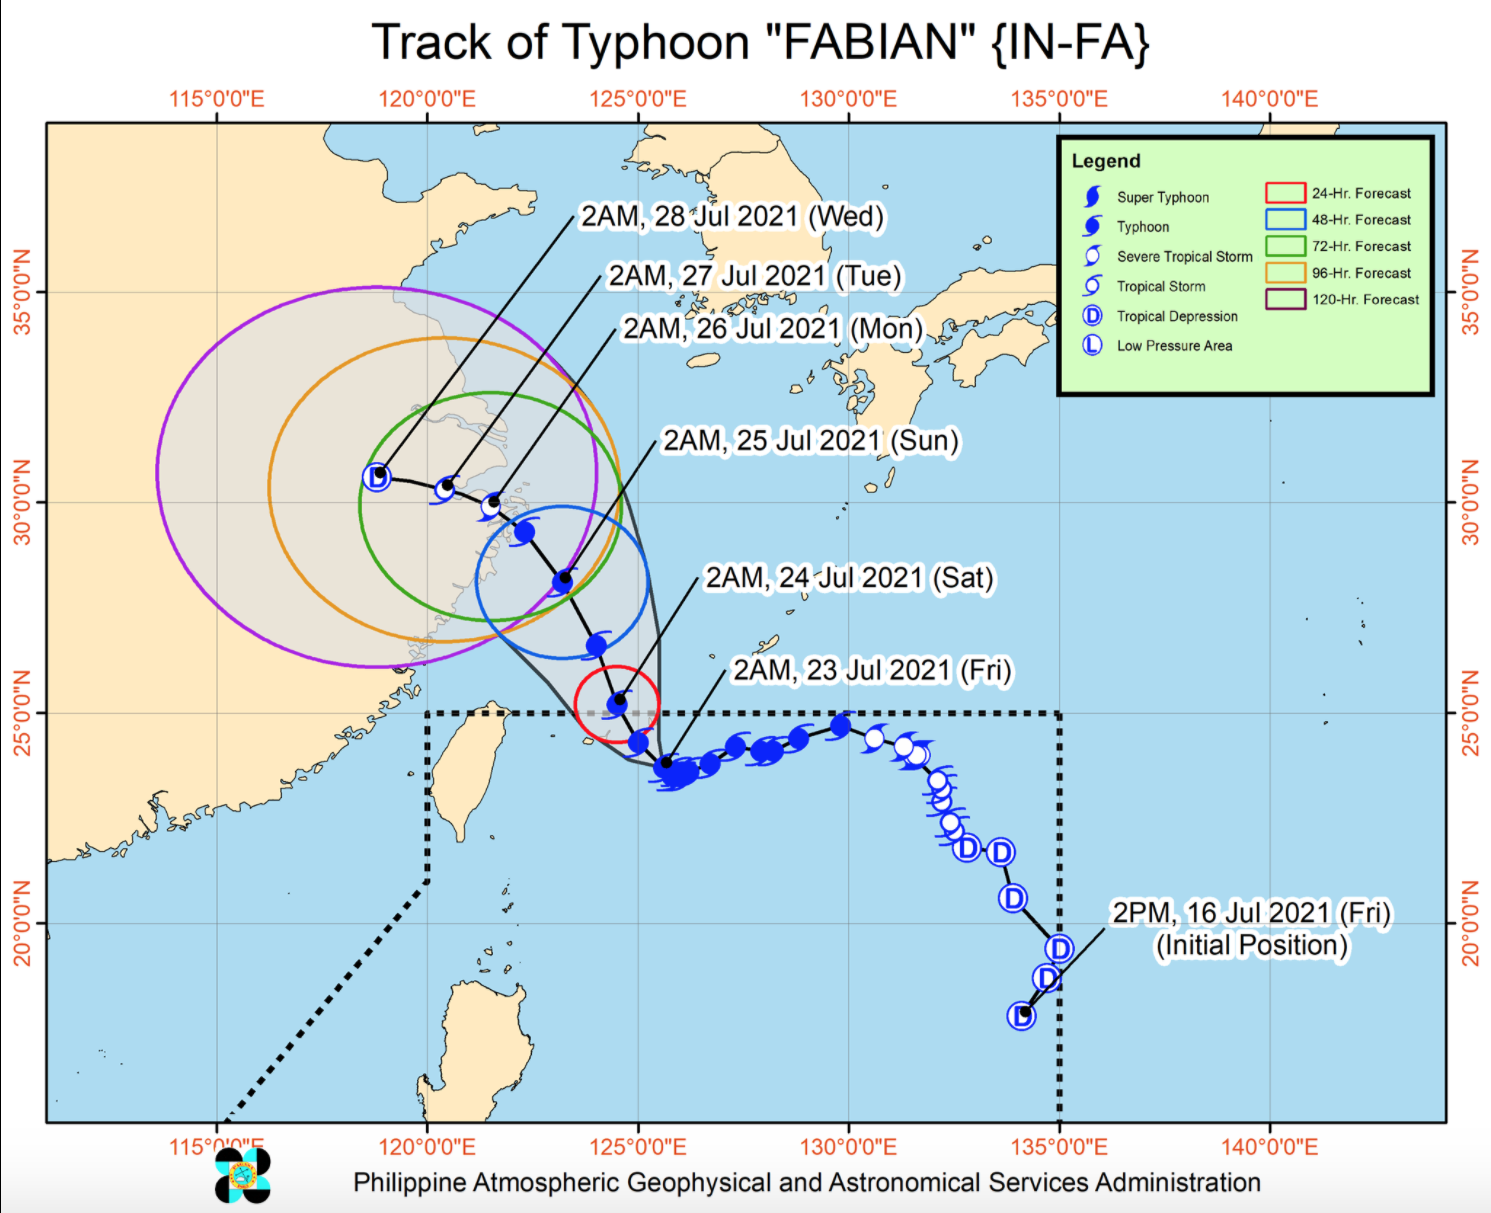 More rains expected in Luzon areas as Fabian continues to enhance Habagat - GMA News Online